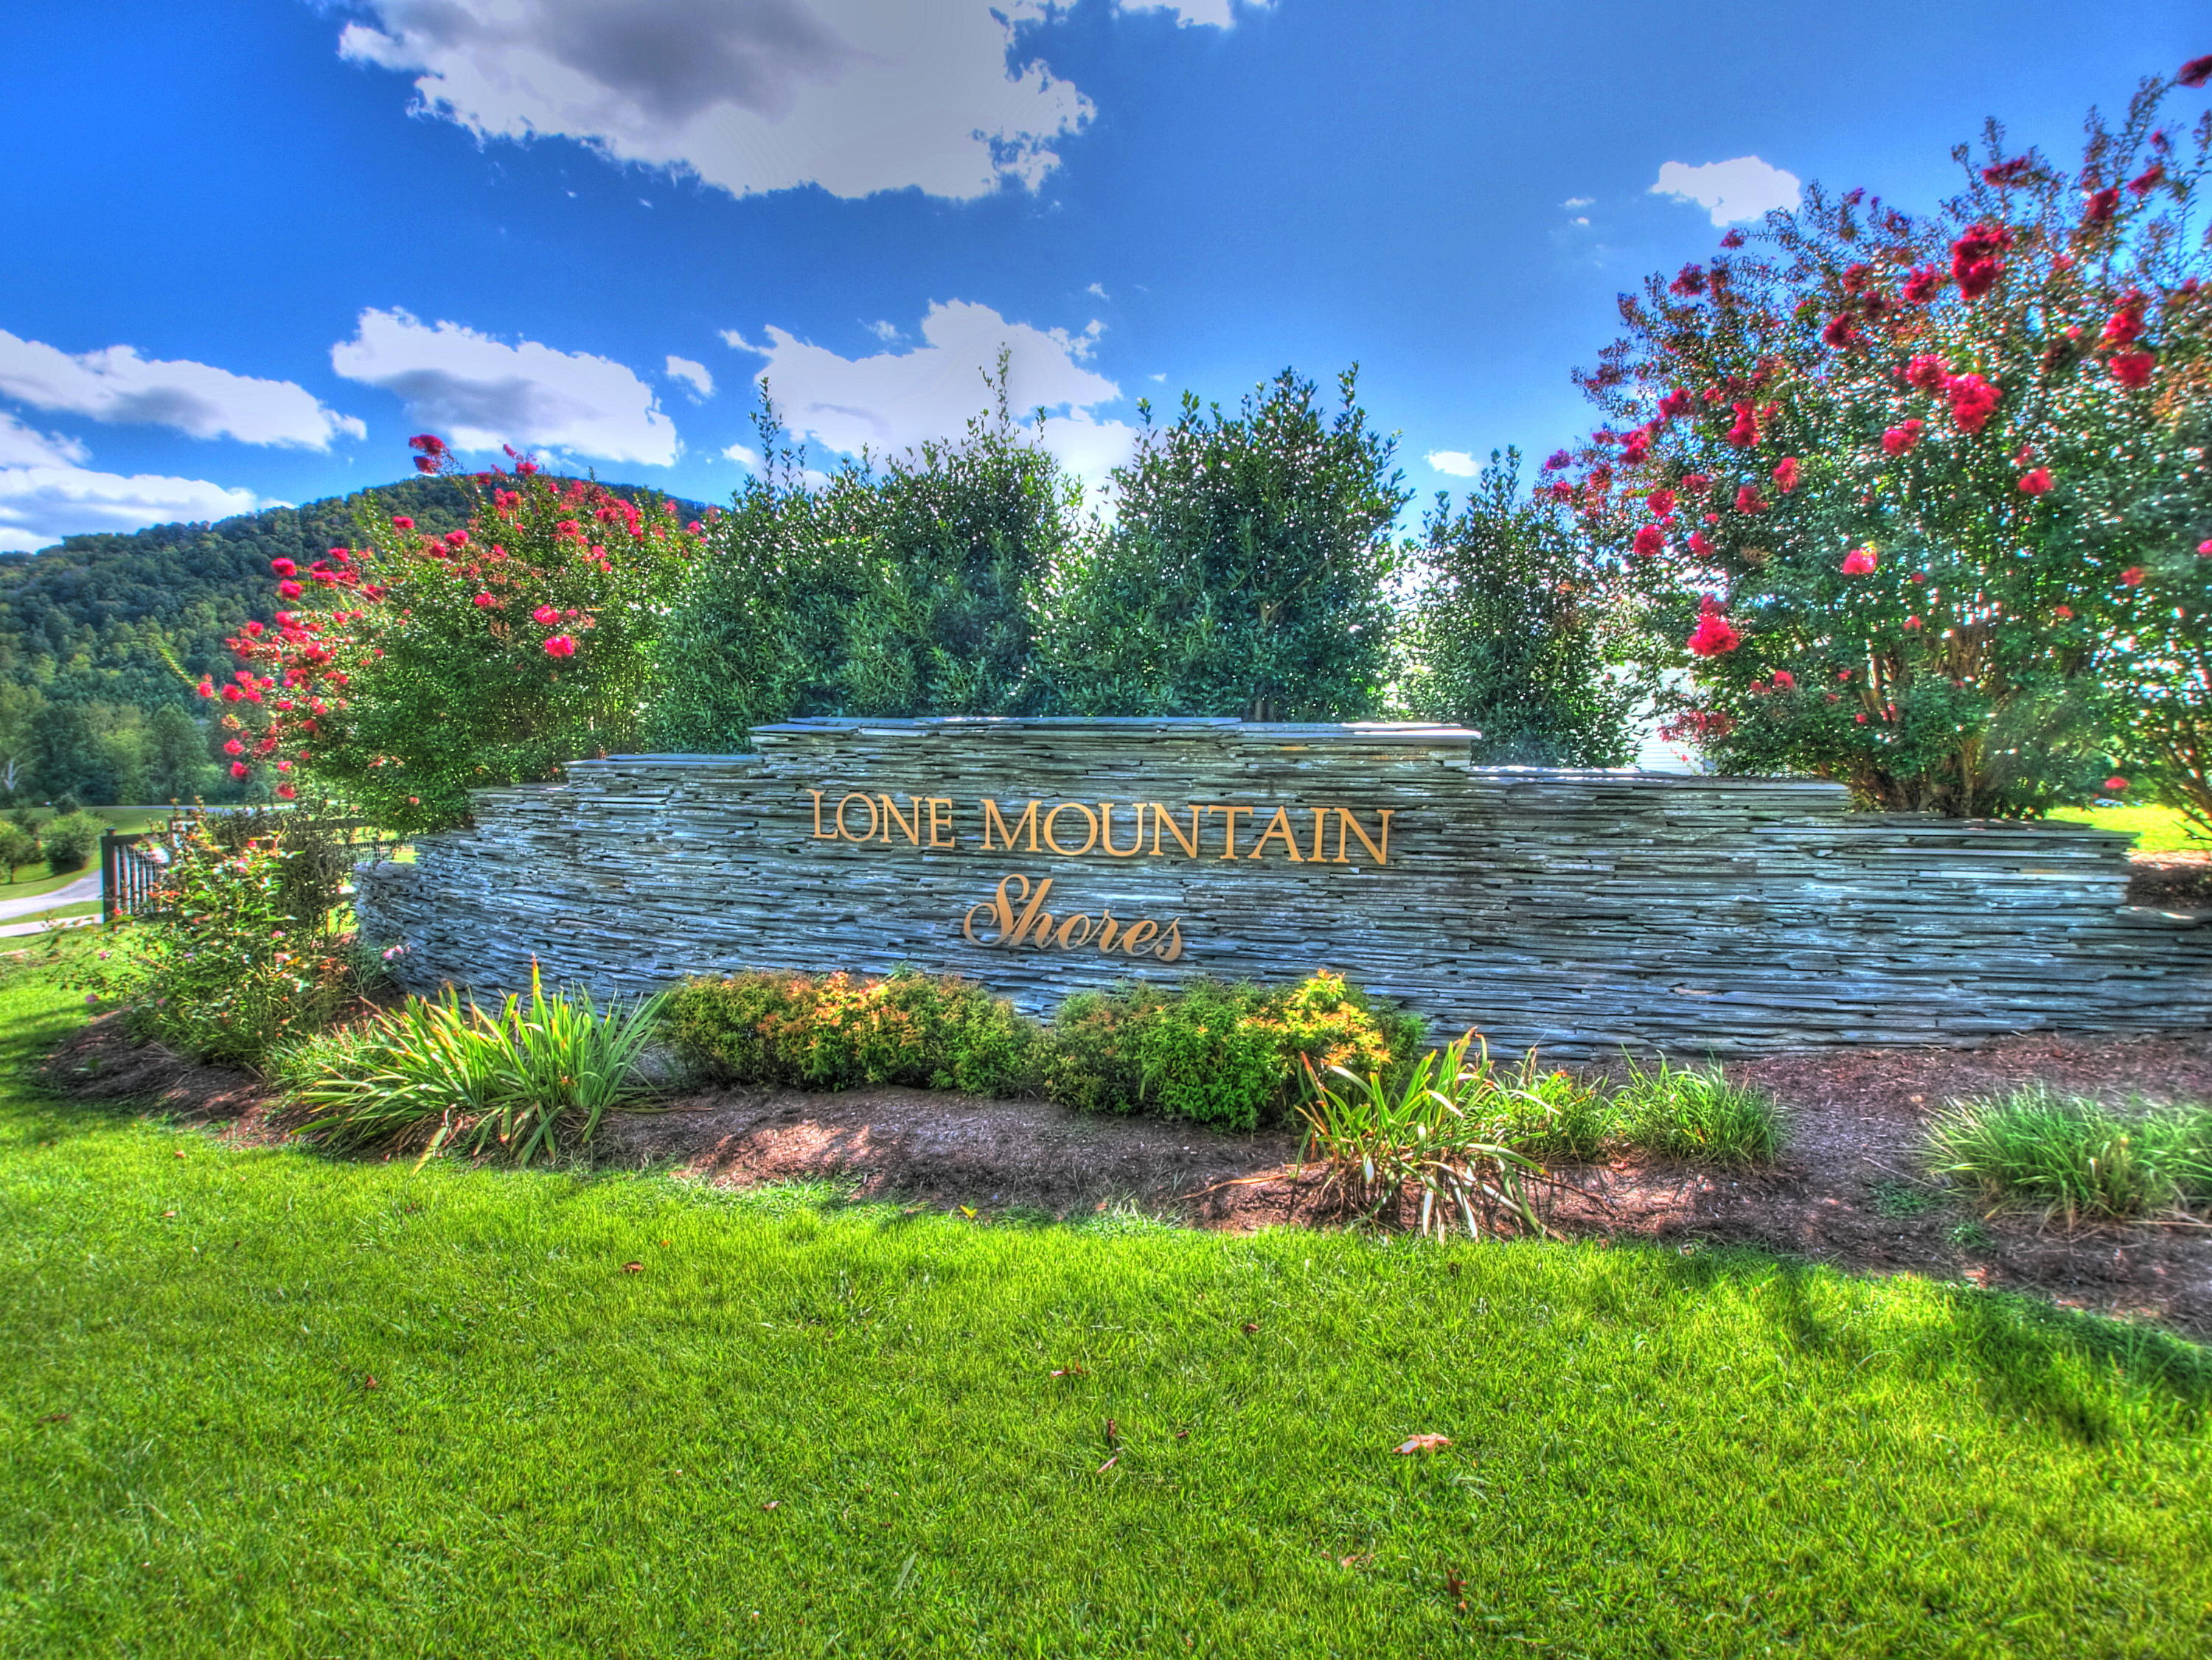 Lots 33/34 Mountain Shores Drive: